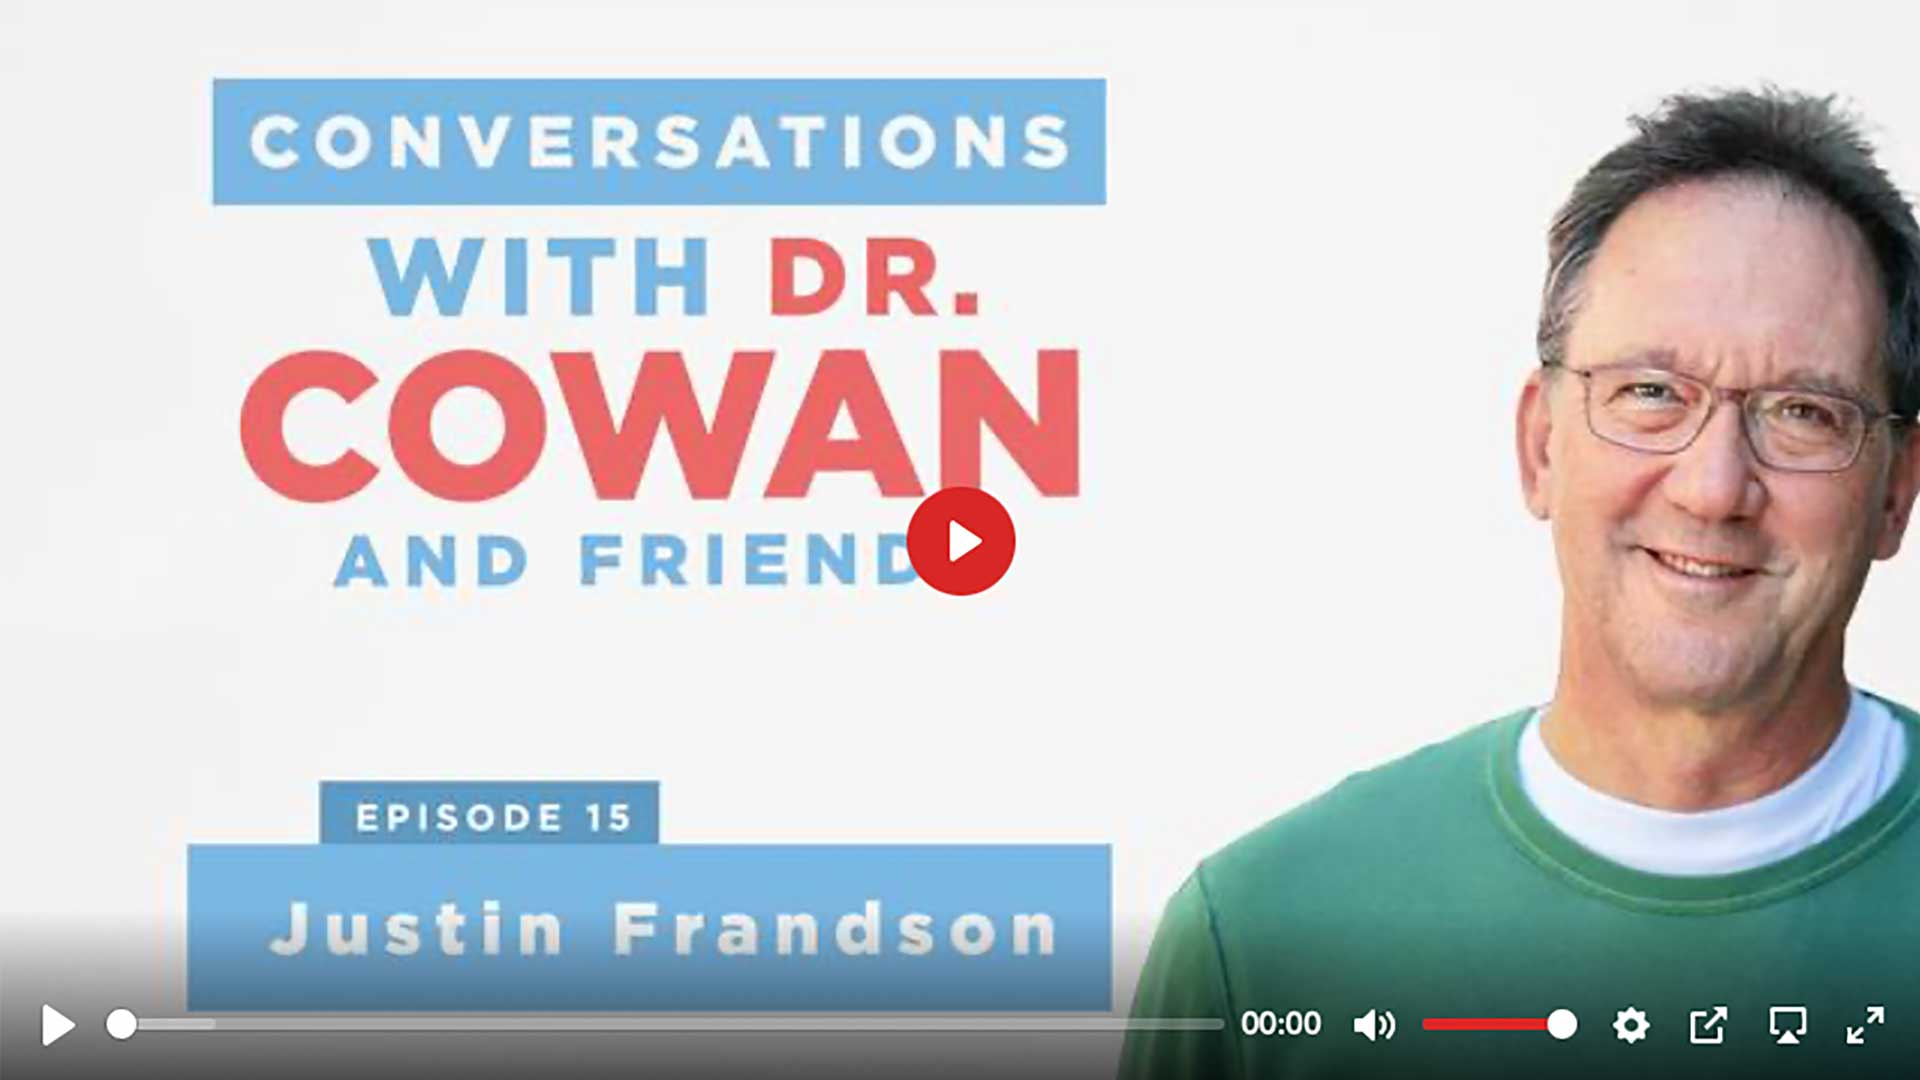 Podcast Conversations with Tom Cowan, MD & Friend with Justin Frandson